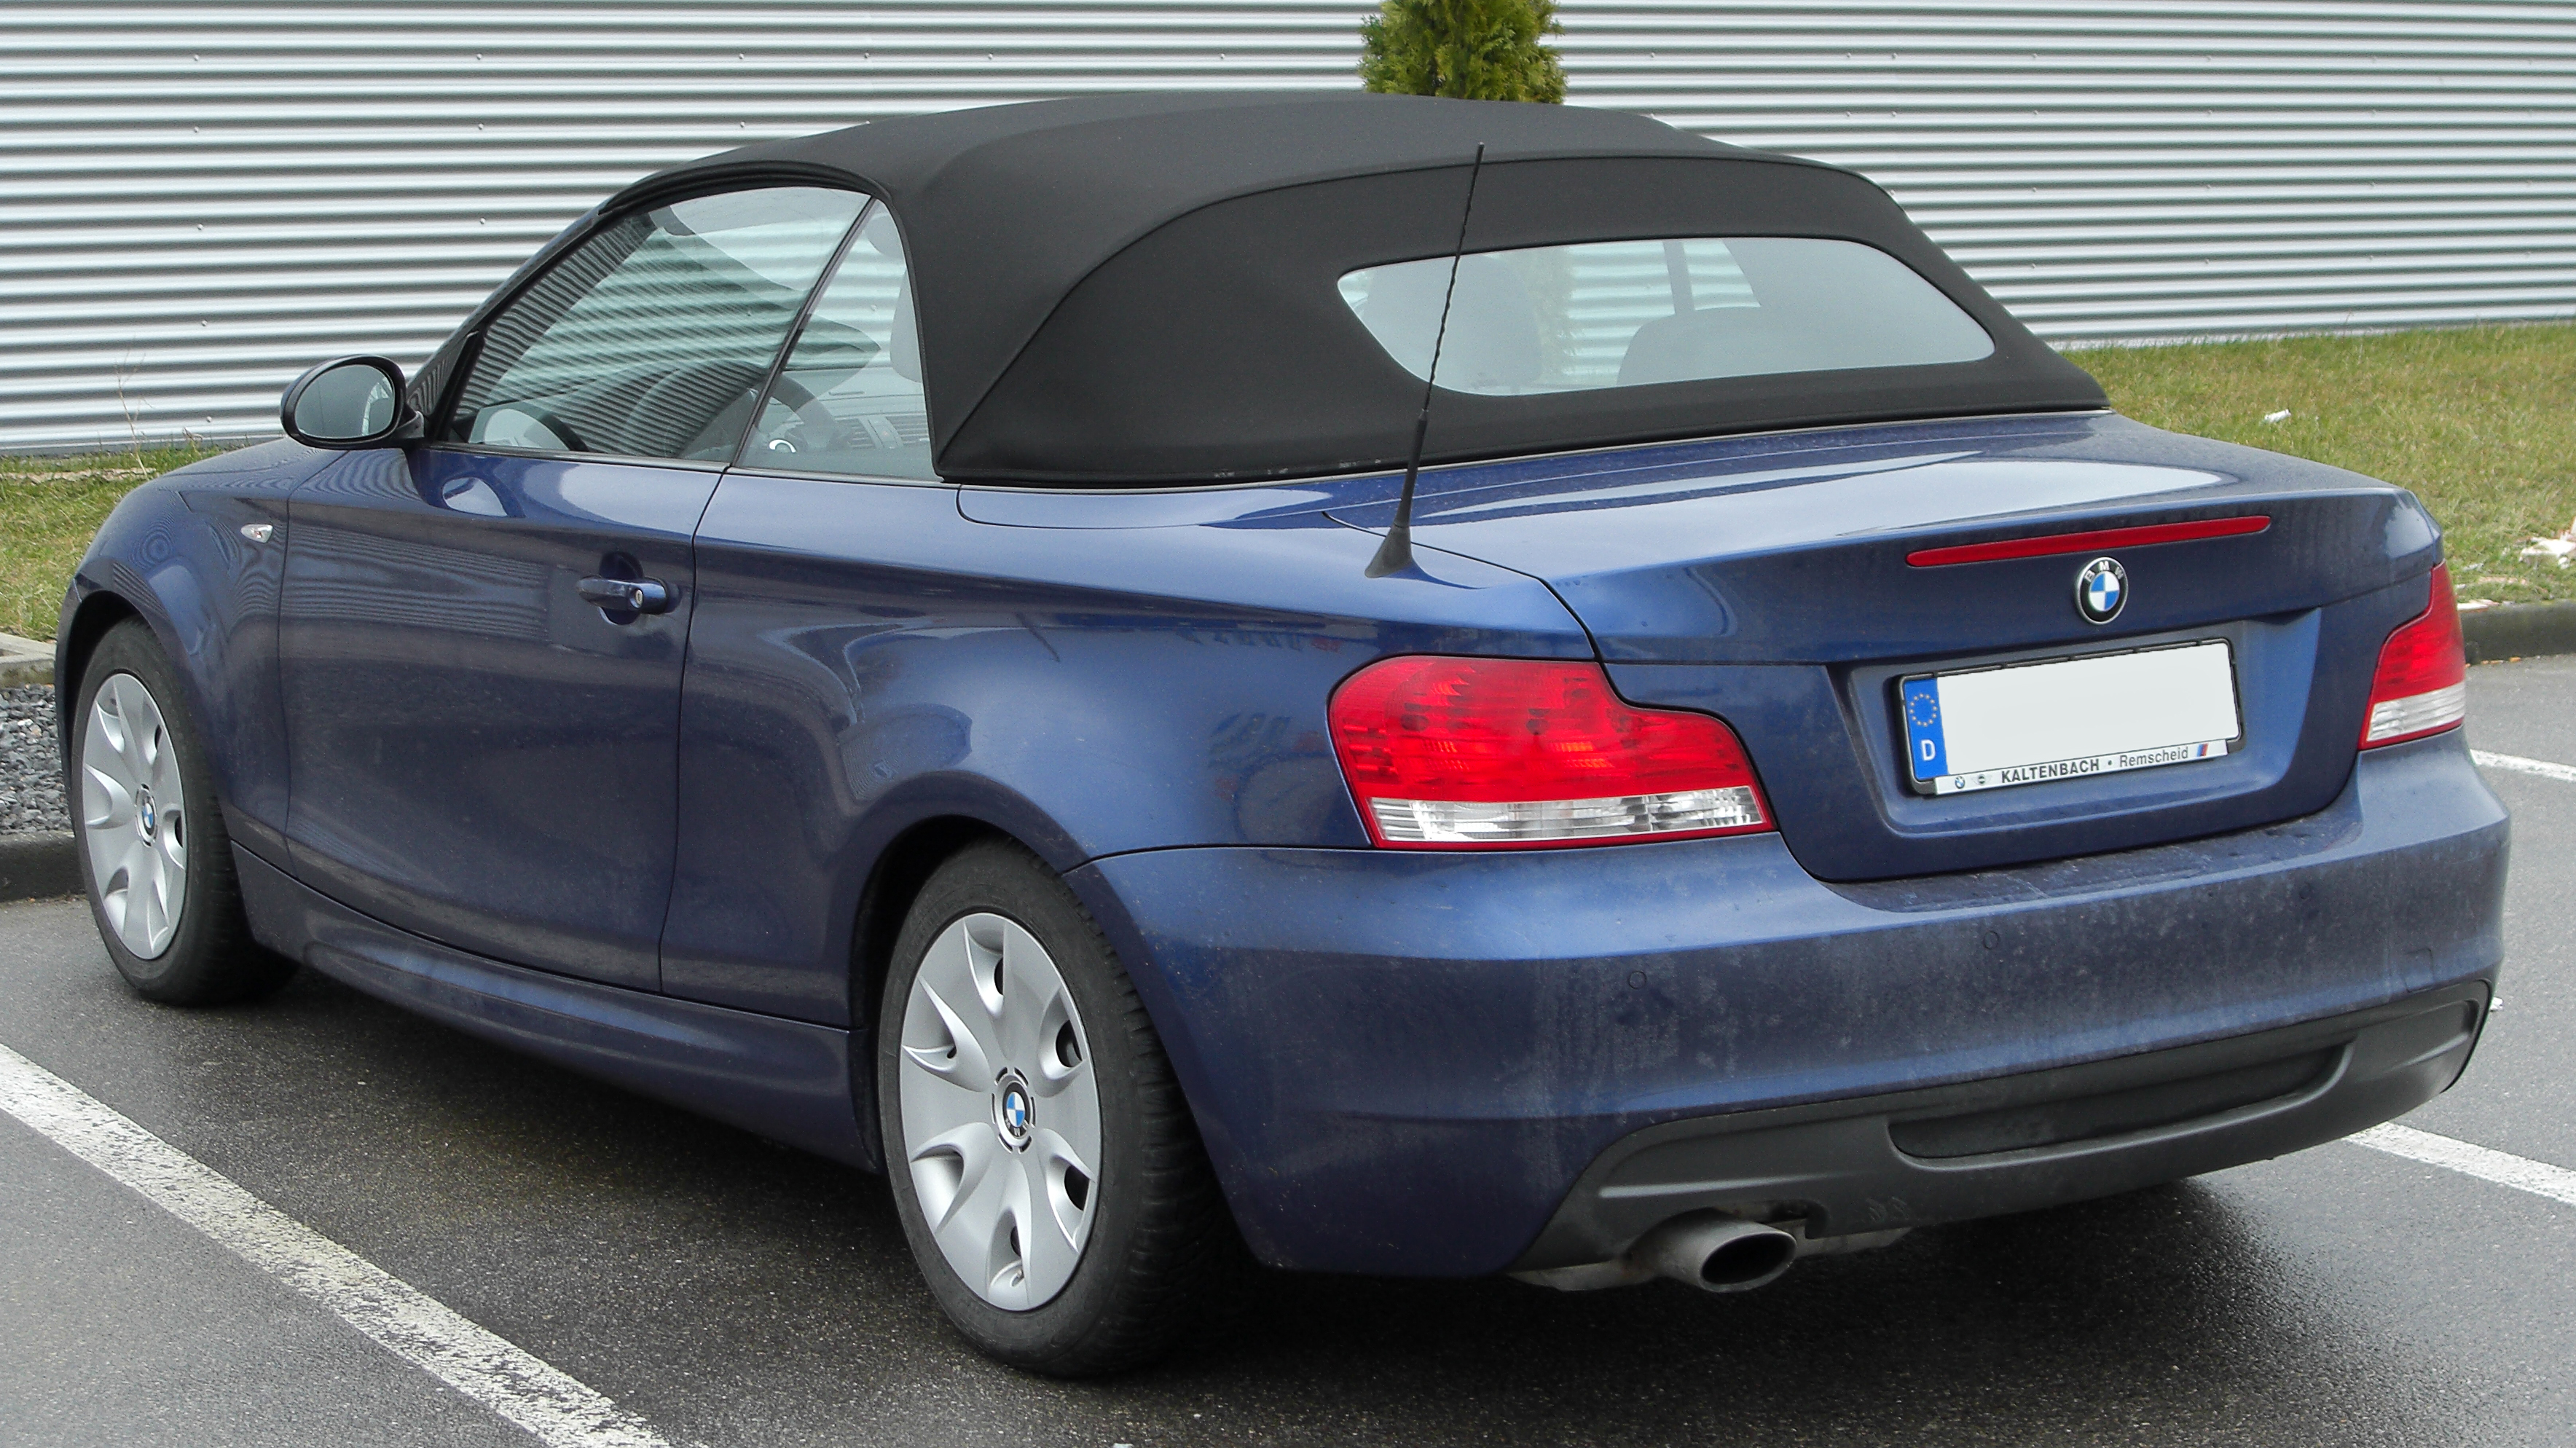 file bmw 1er cabriolet rear wikimedia commons. Black Bedroom Furniture Sets. Home Design Ideas